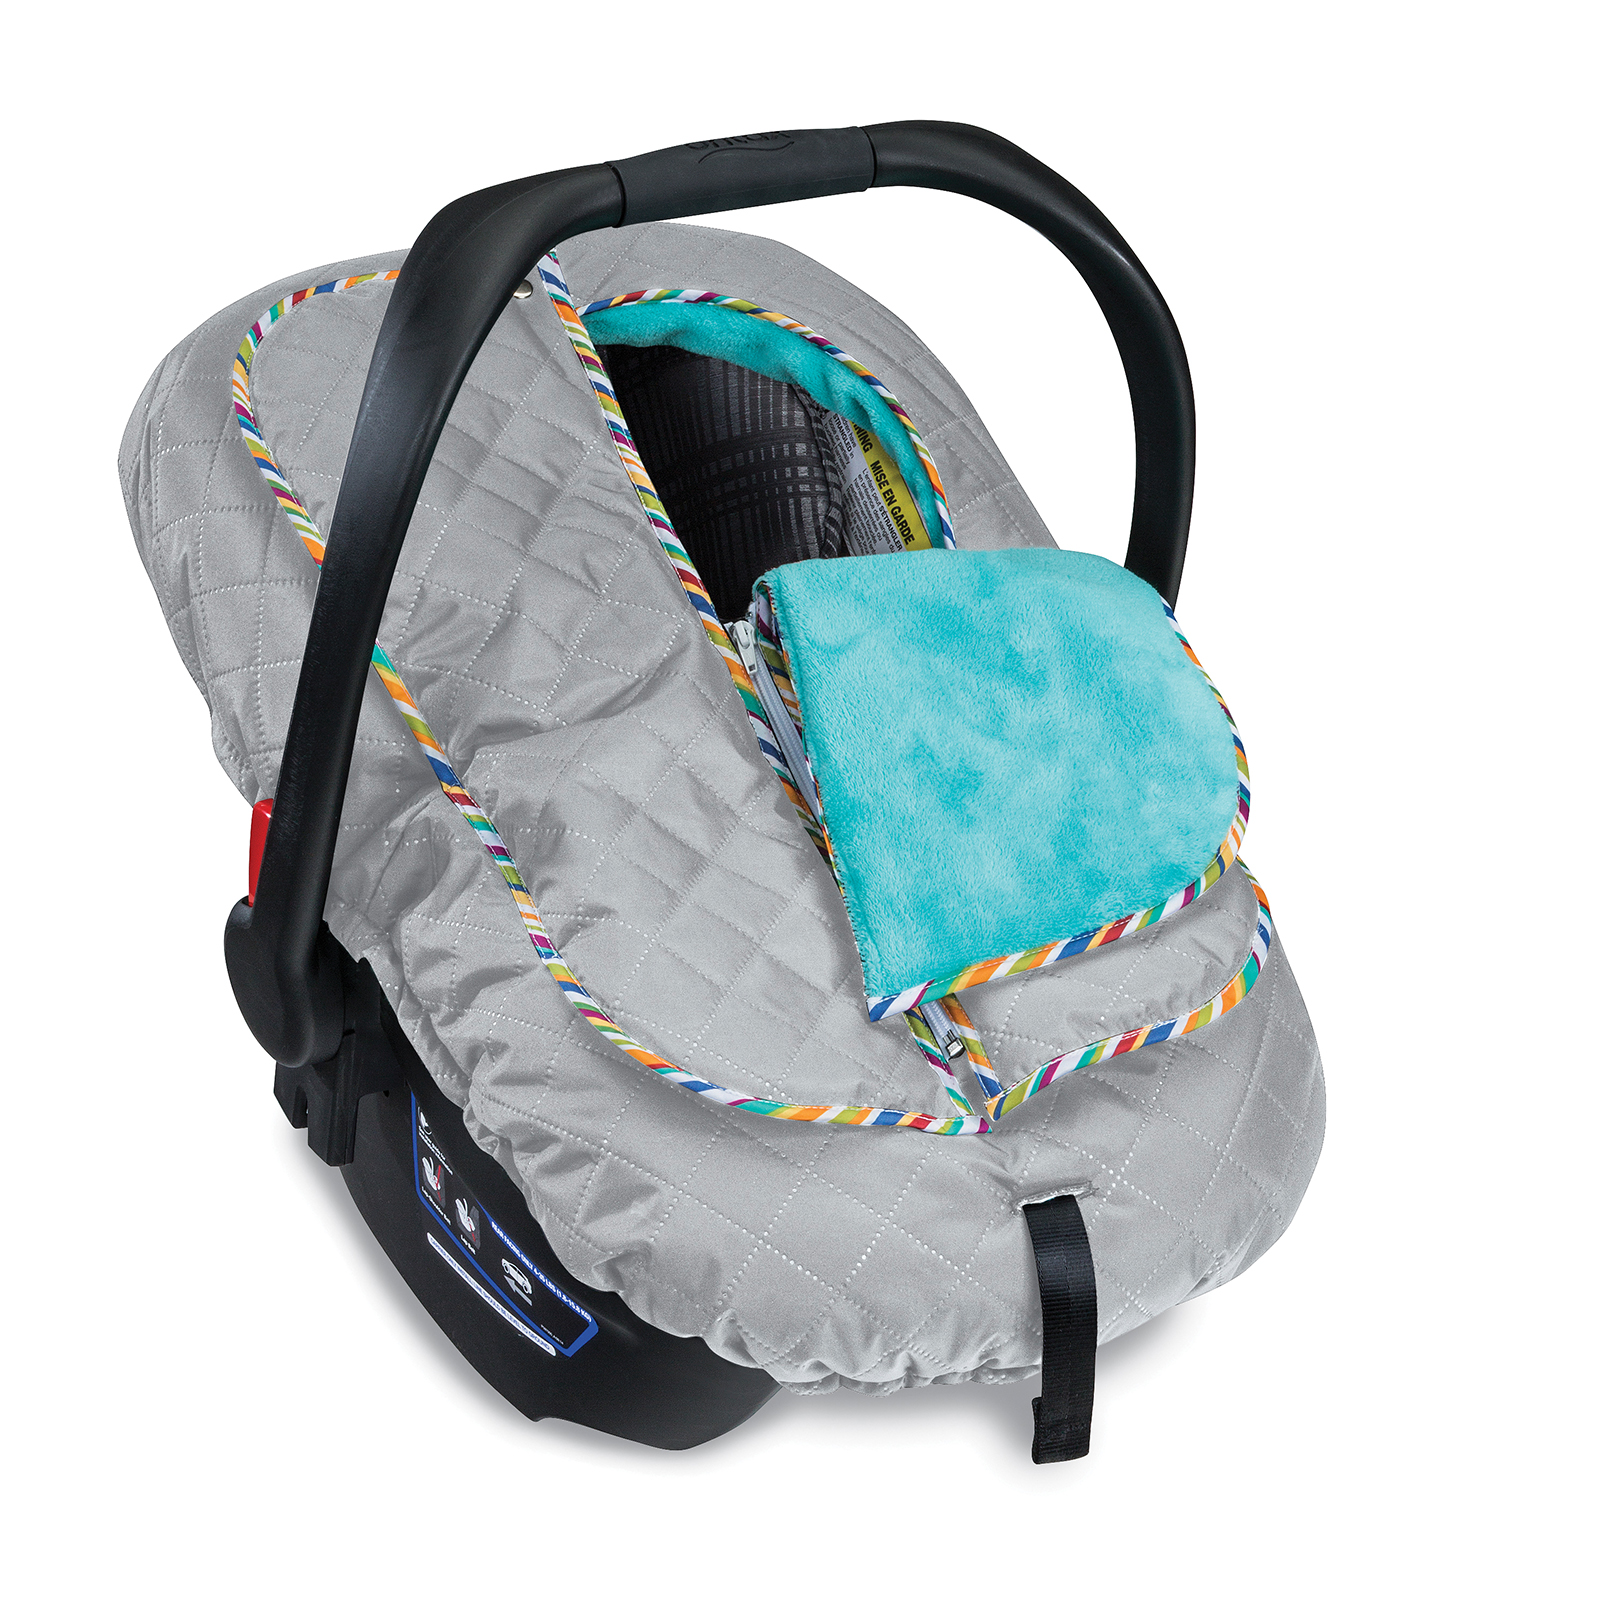 britax b warm car seat cover arctic car seat accessories at hayneedle. Black Bedroom Furniture Sets. Home Design Ideas